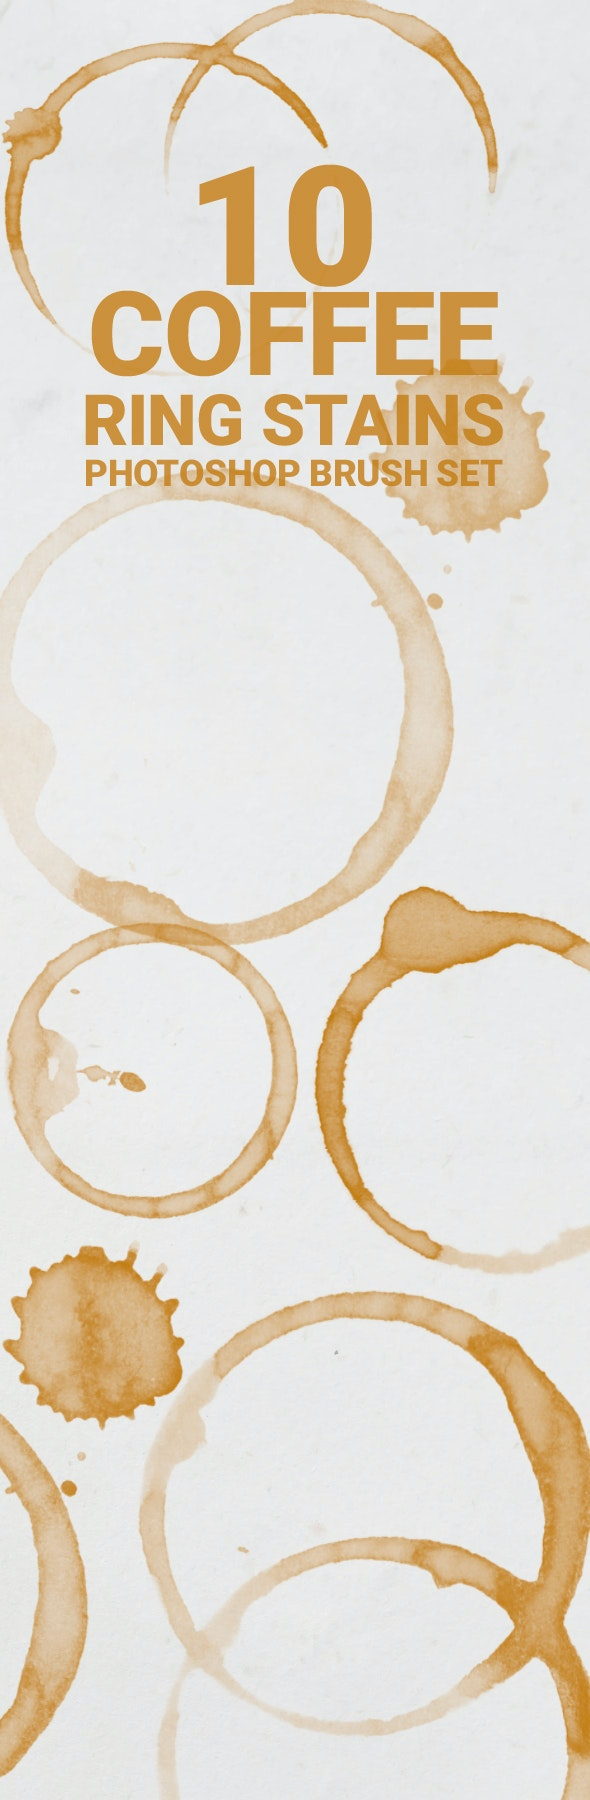 10 Coffee Ring Stains - Brushes Photoshop